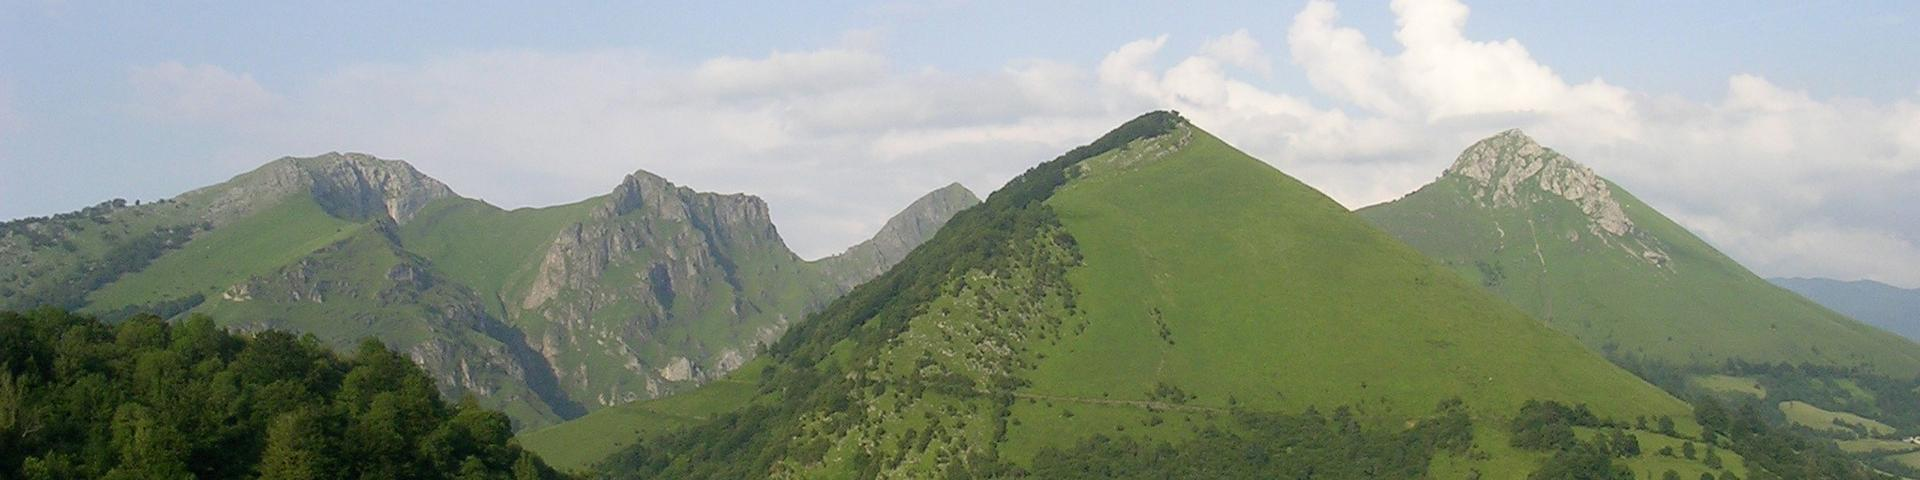 The Béarn mountain range, Ariège